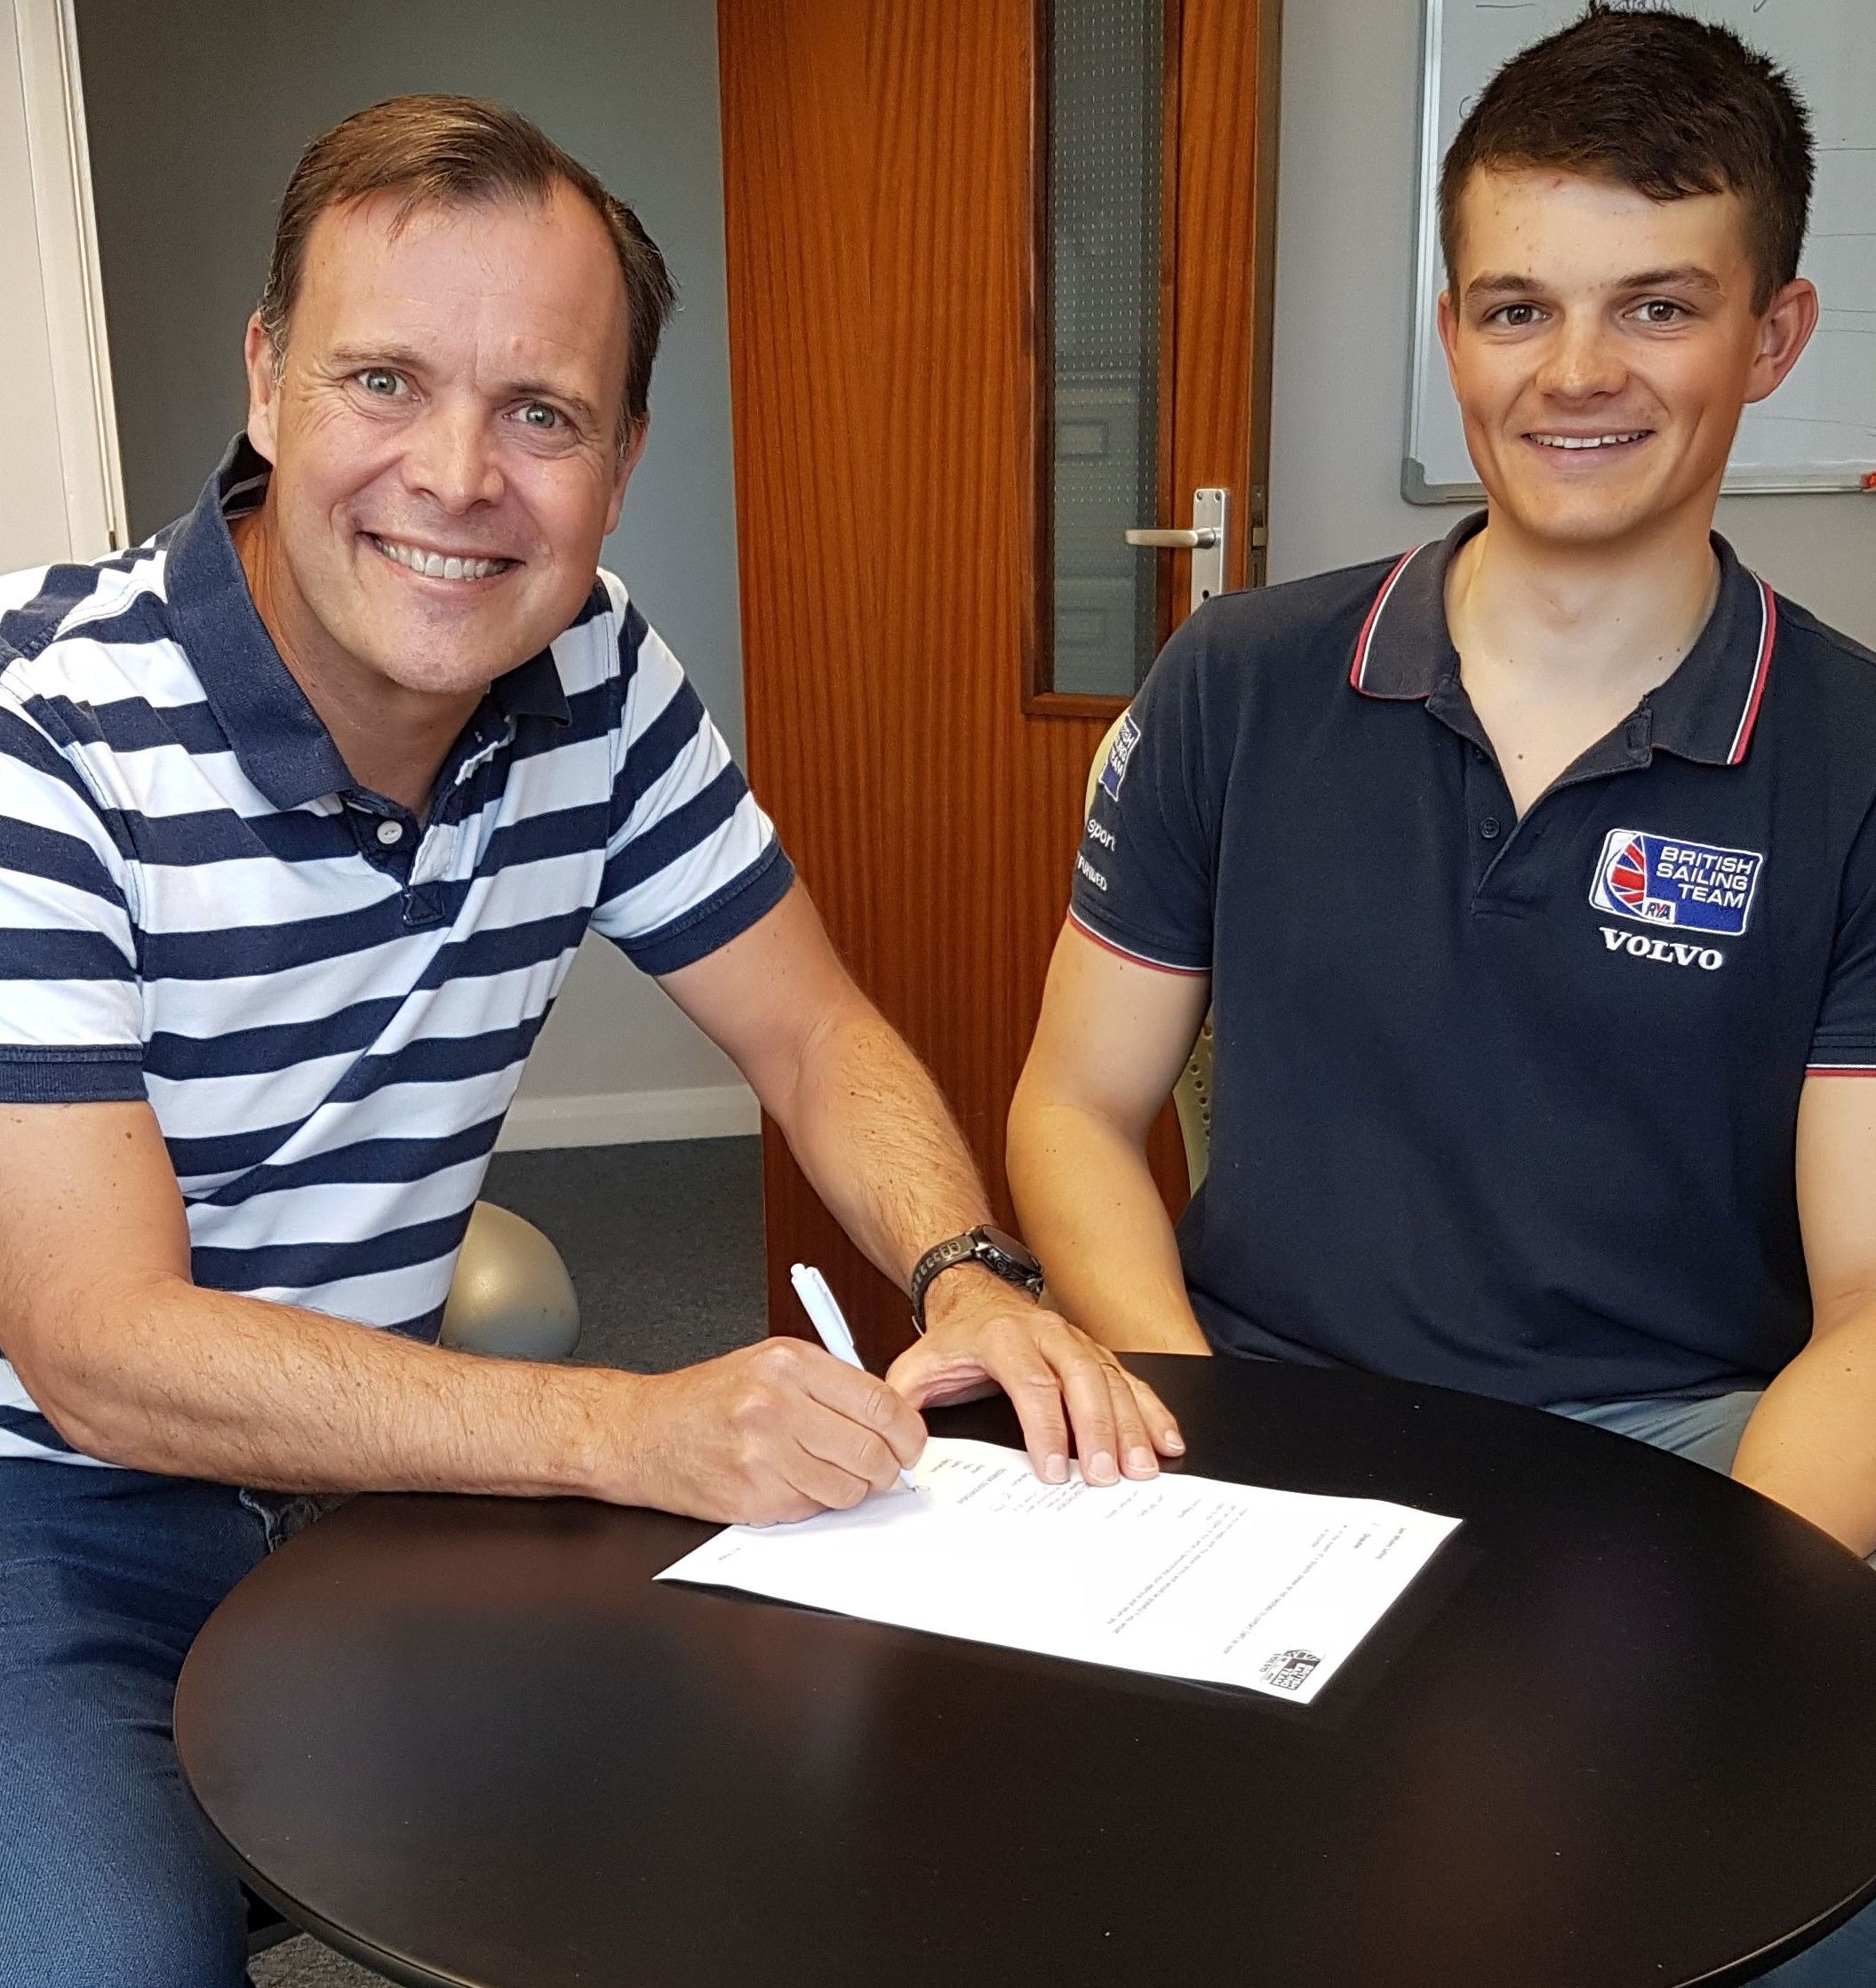 SUPPORT: Phil Whitehurst, Actisense CEO, with Sam Whaley of British Sailing Team